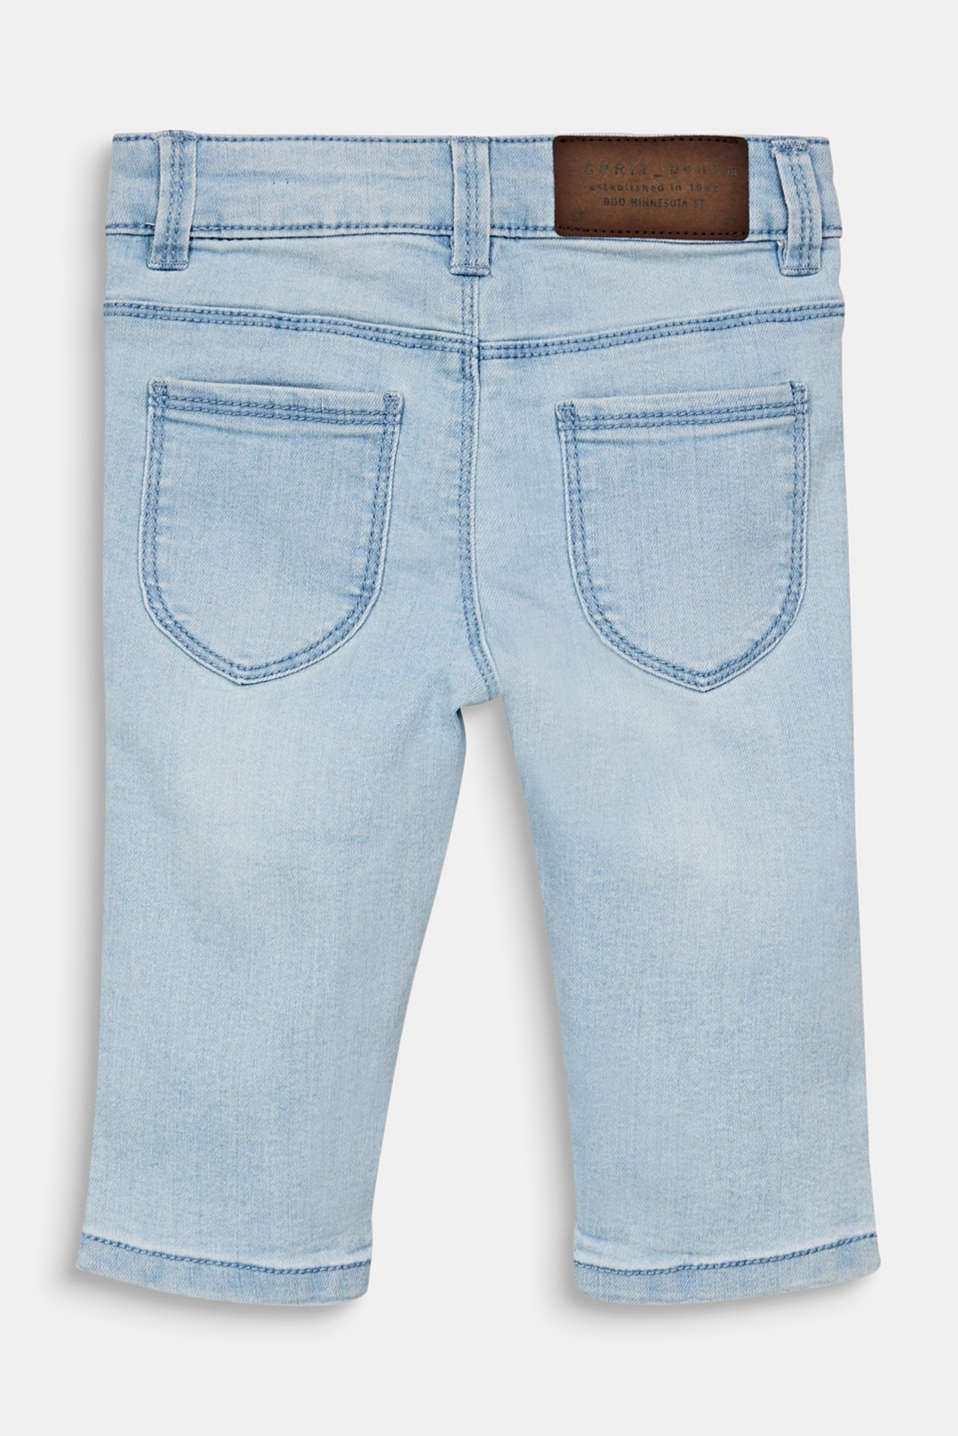 Capris jeans with an adjustable waistband, BLEACHED DENIM, detail image number 1